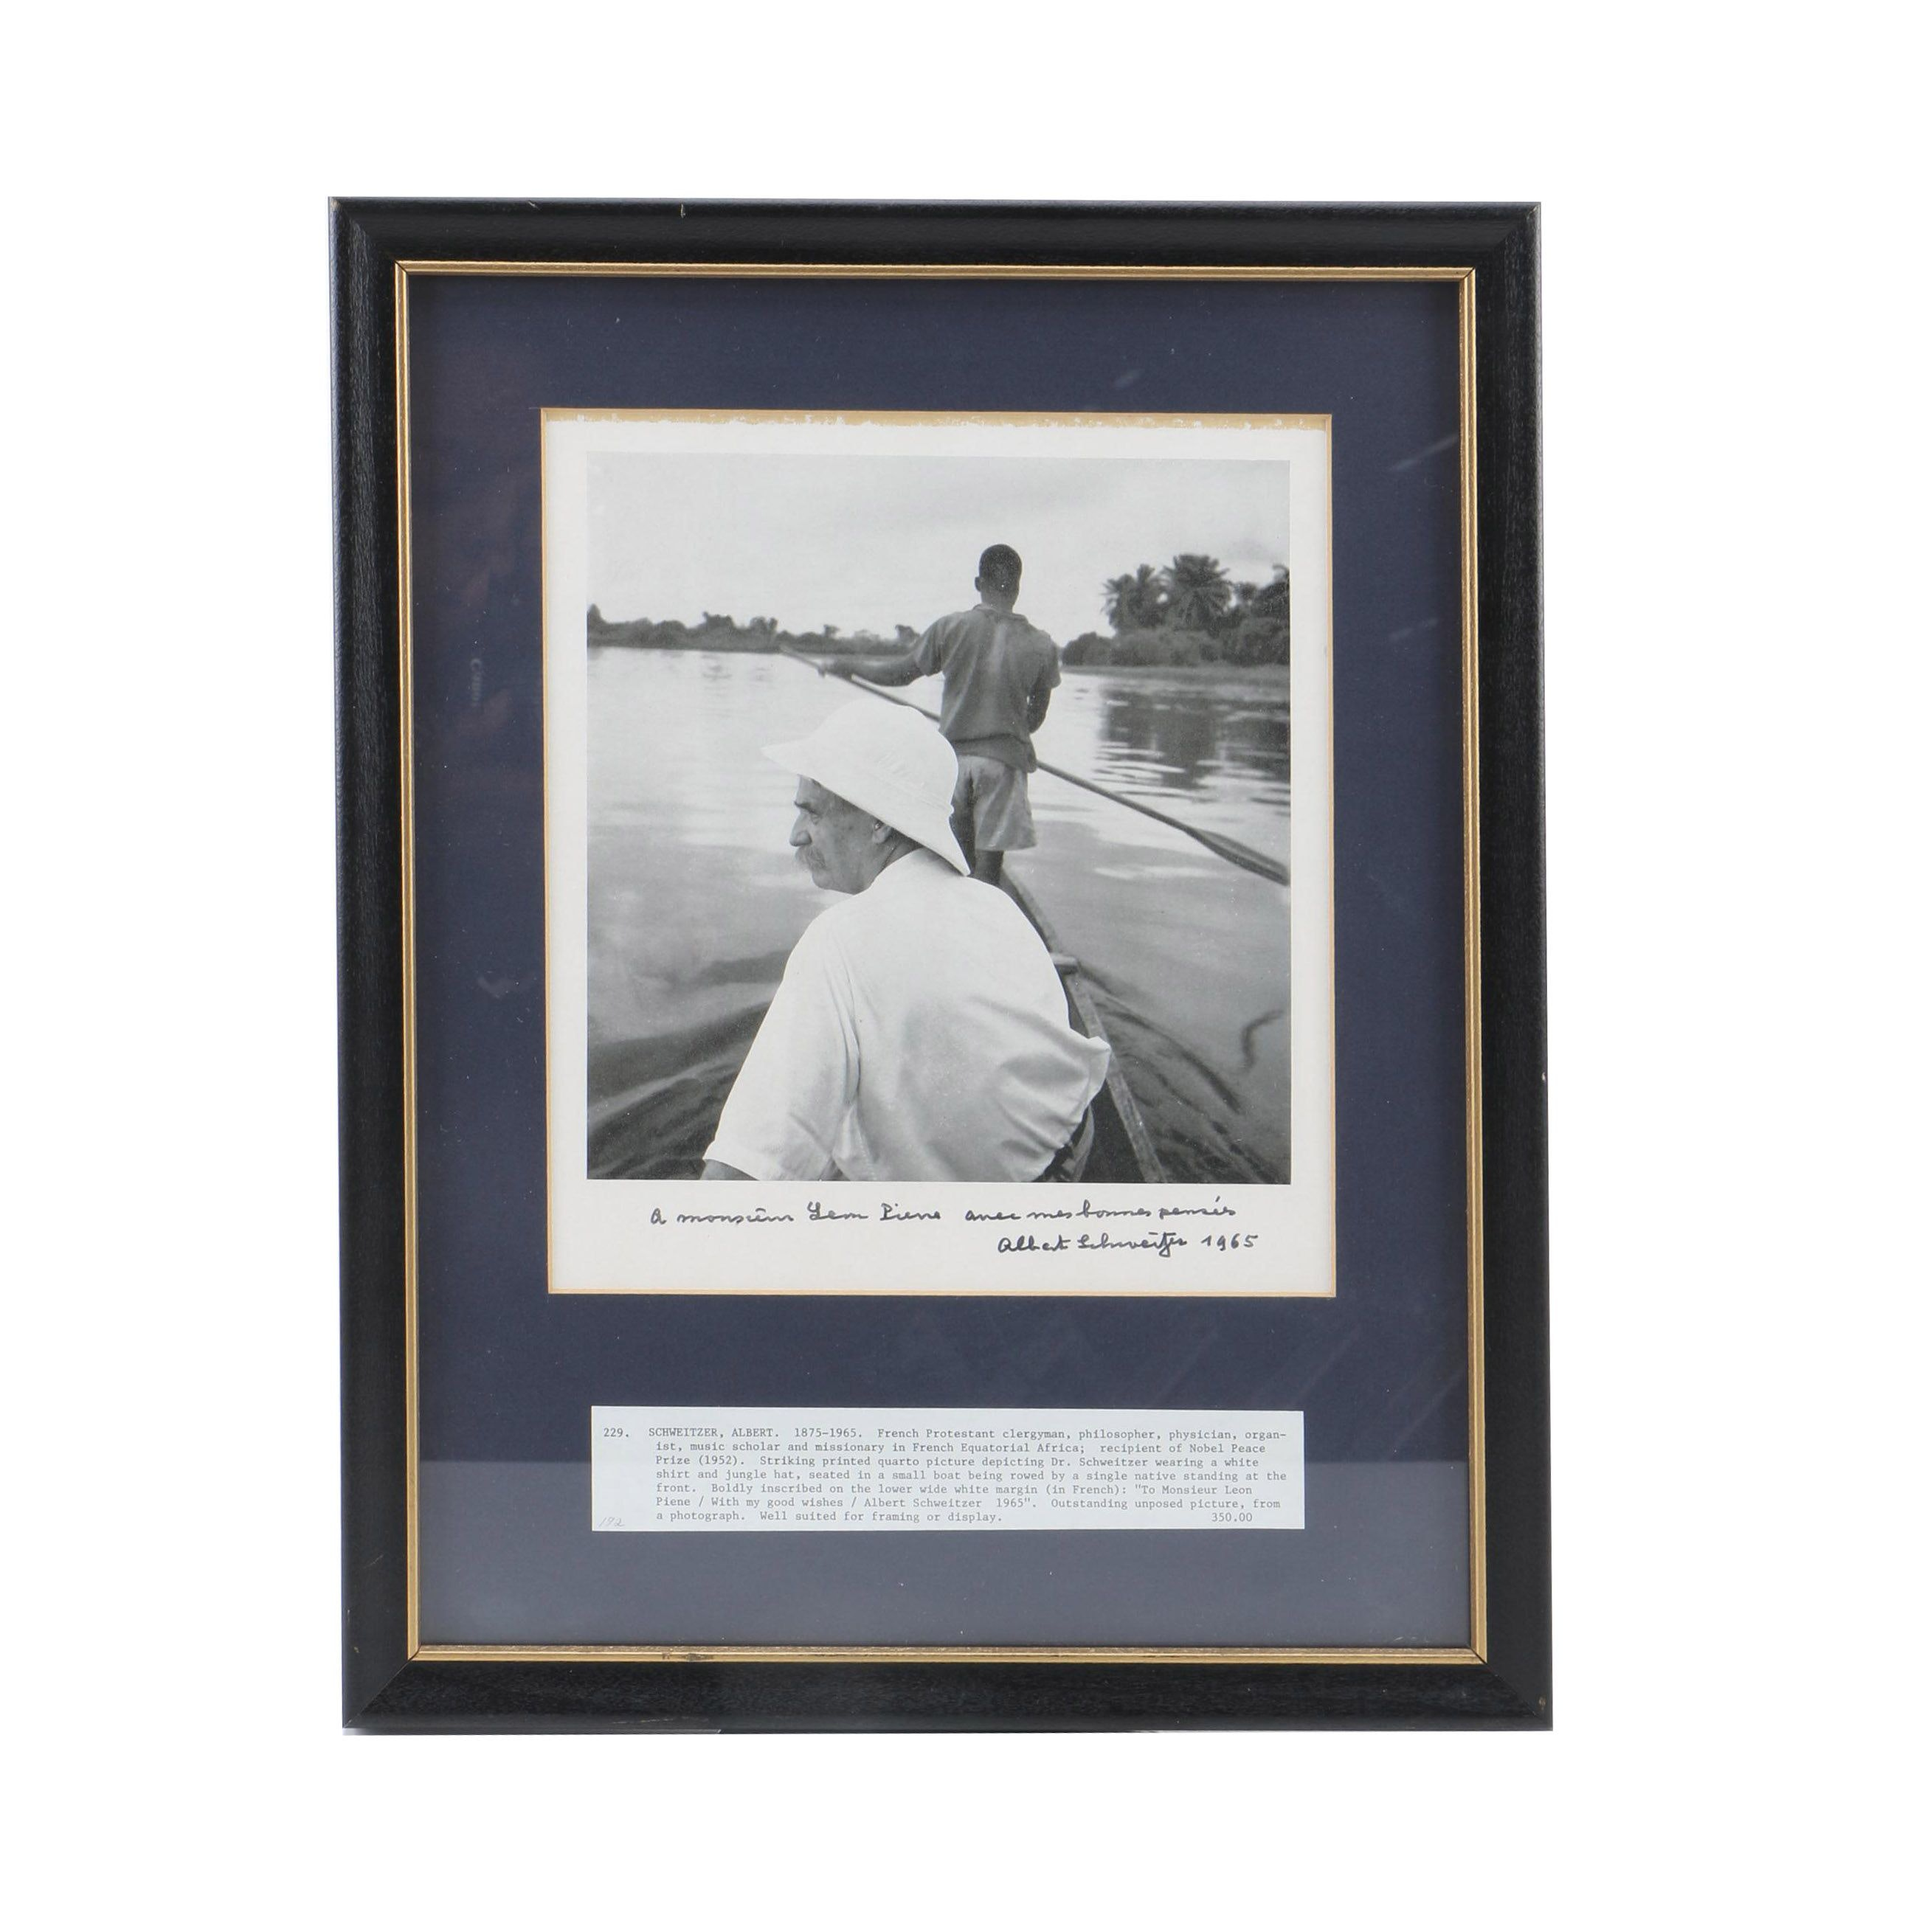 Albert Schweitzer Signed and Inscribed Photograph in Frame